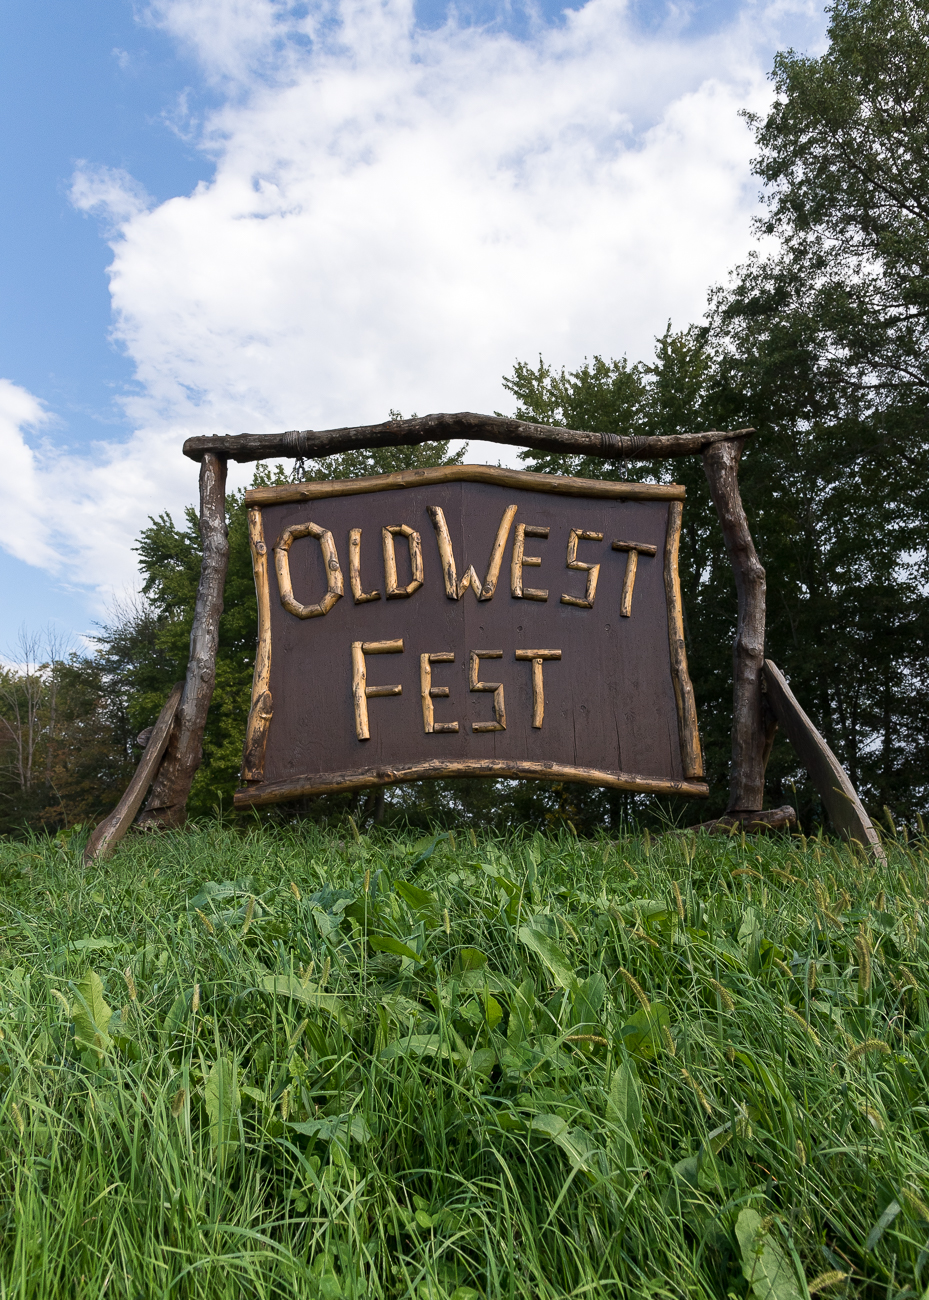 Now in its 11th year, the Old West Fest runs until October 14. The weekly event features outlaws slinging guns in the street, period-appropriate comedy shows, vaudeville acts, vendors of handmade goods, horse riding, and other unique performances inspired by 19th century America. ADDRESS: 1449 Greenbush Cobb Road (45176) / Image: Phil Armstrong, Cincinnati Refined // Published: 10.8.18